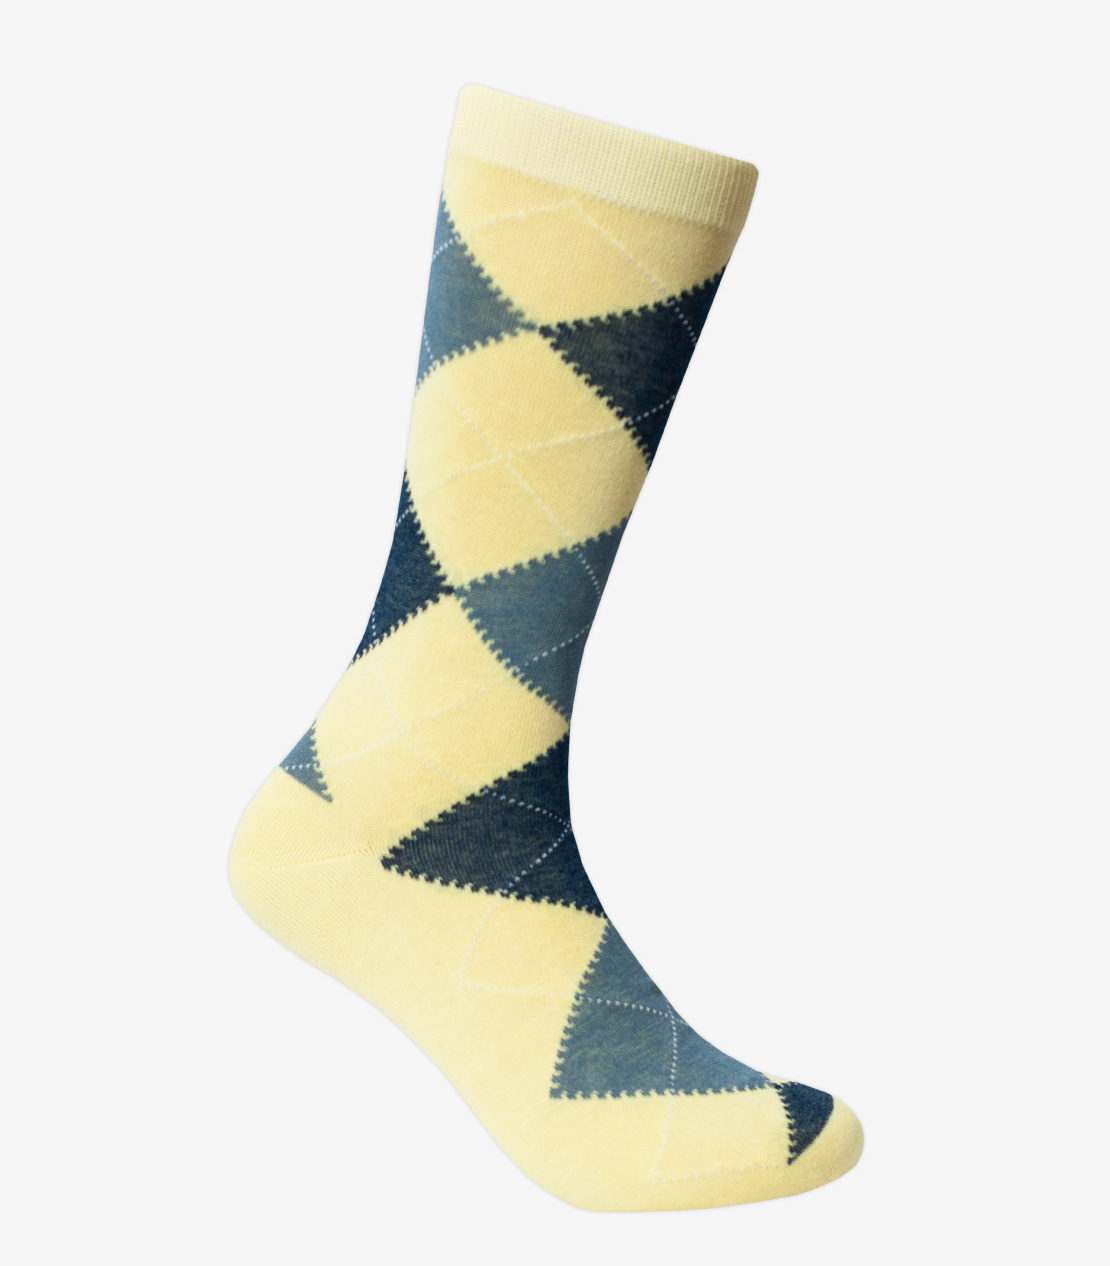 Yellow, Blue, and Grey Argyle Socks